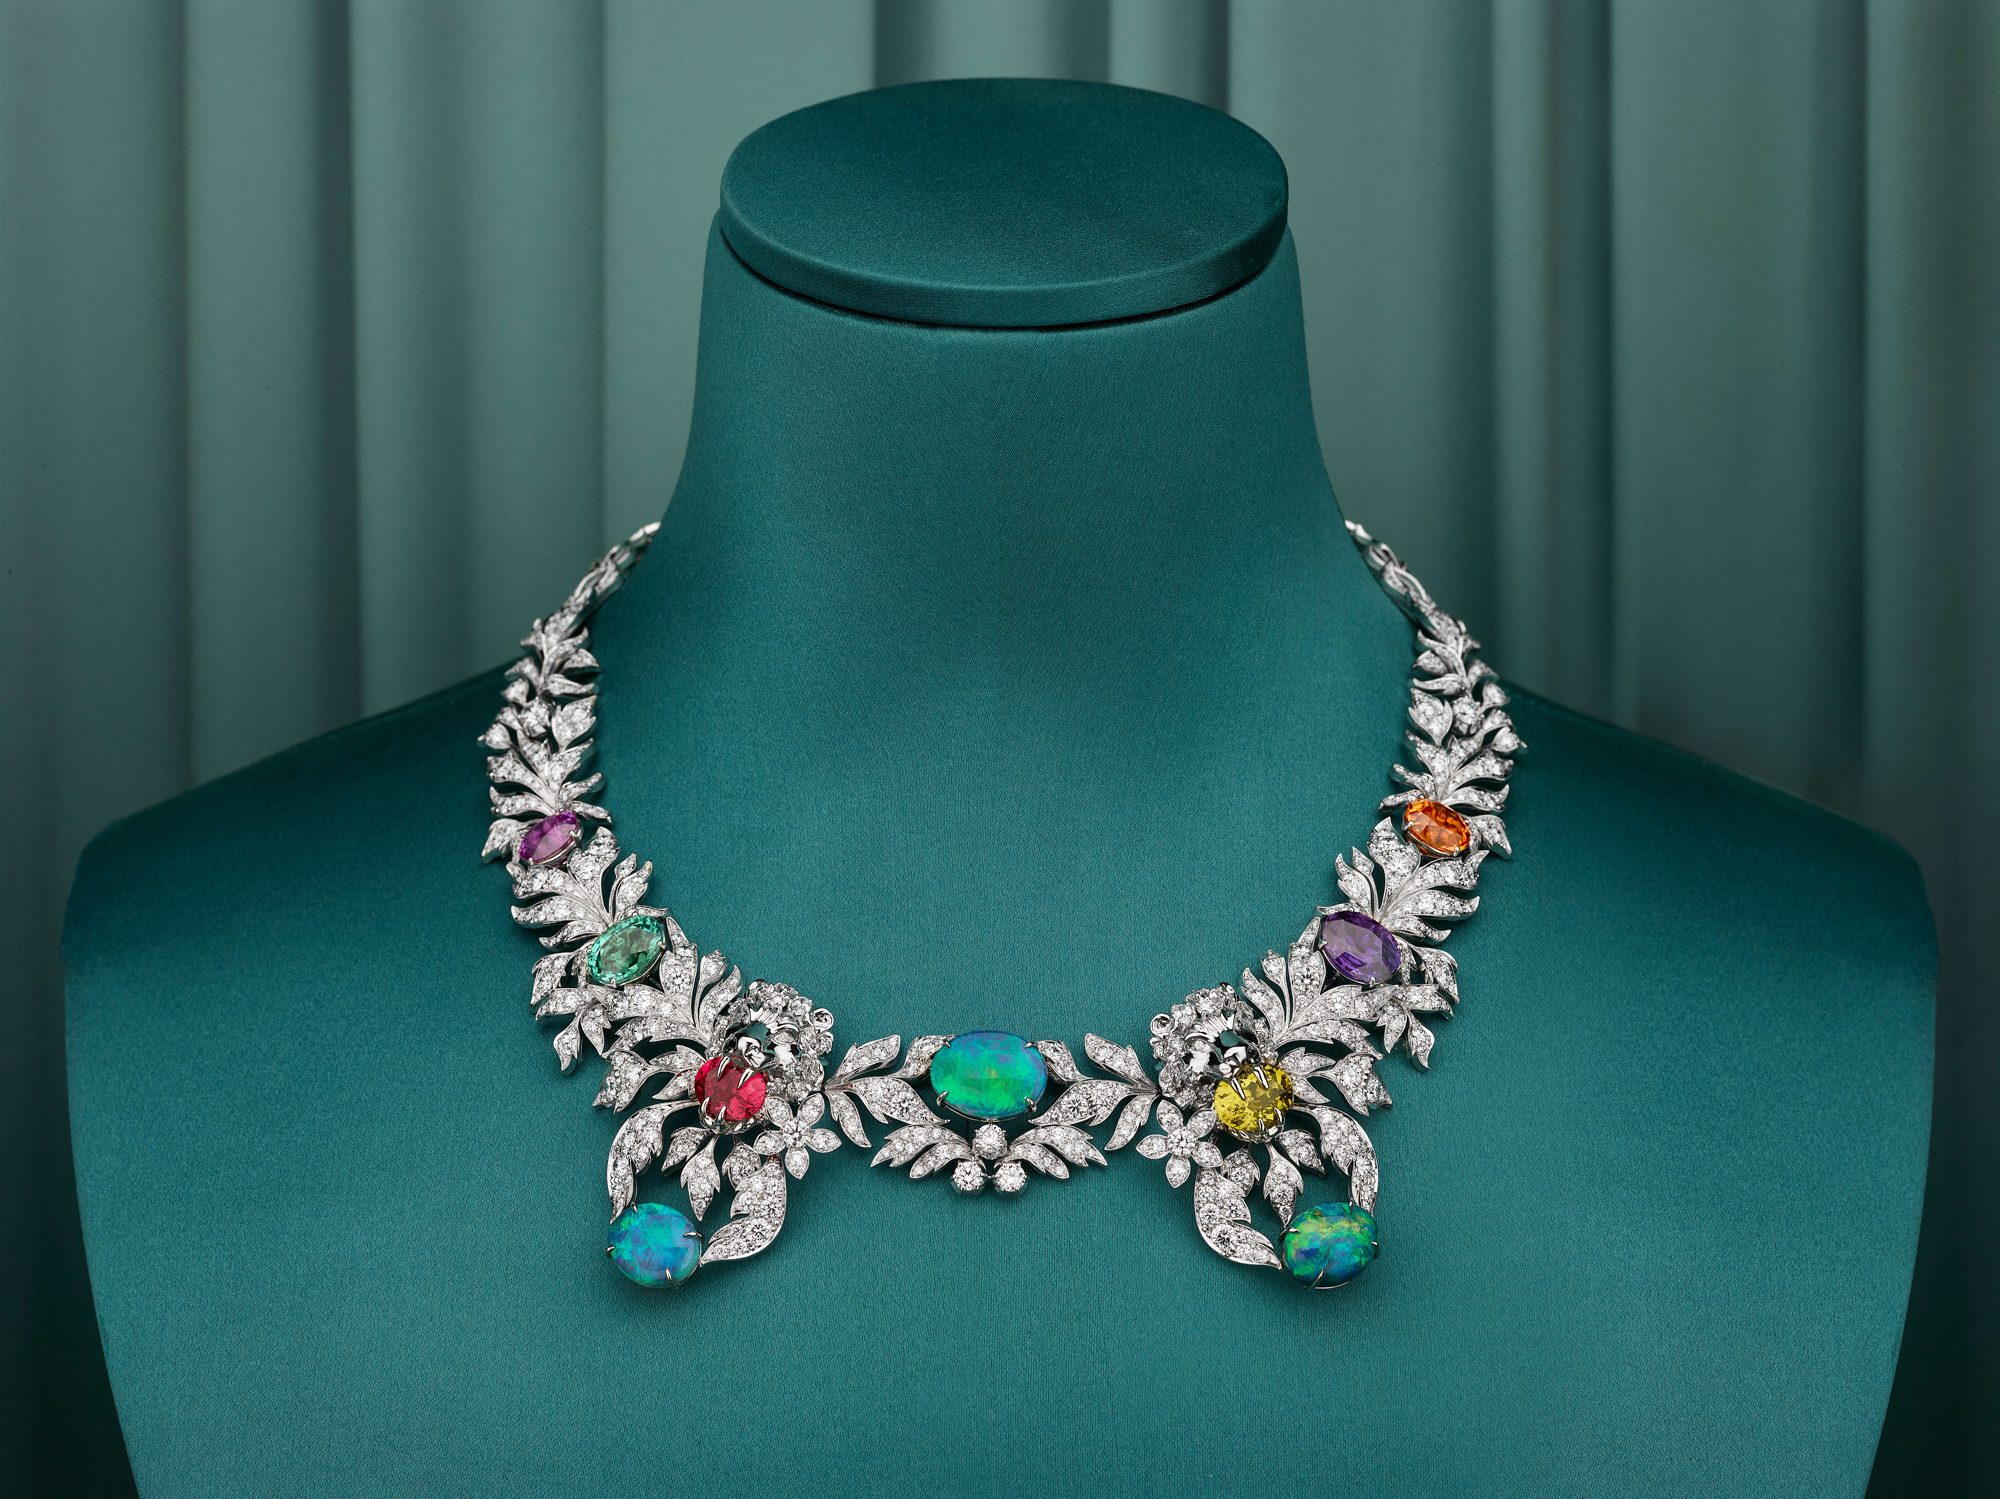 Gucci vaults into high jewellery with its iconic eccentricity